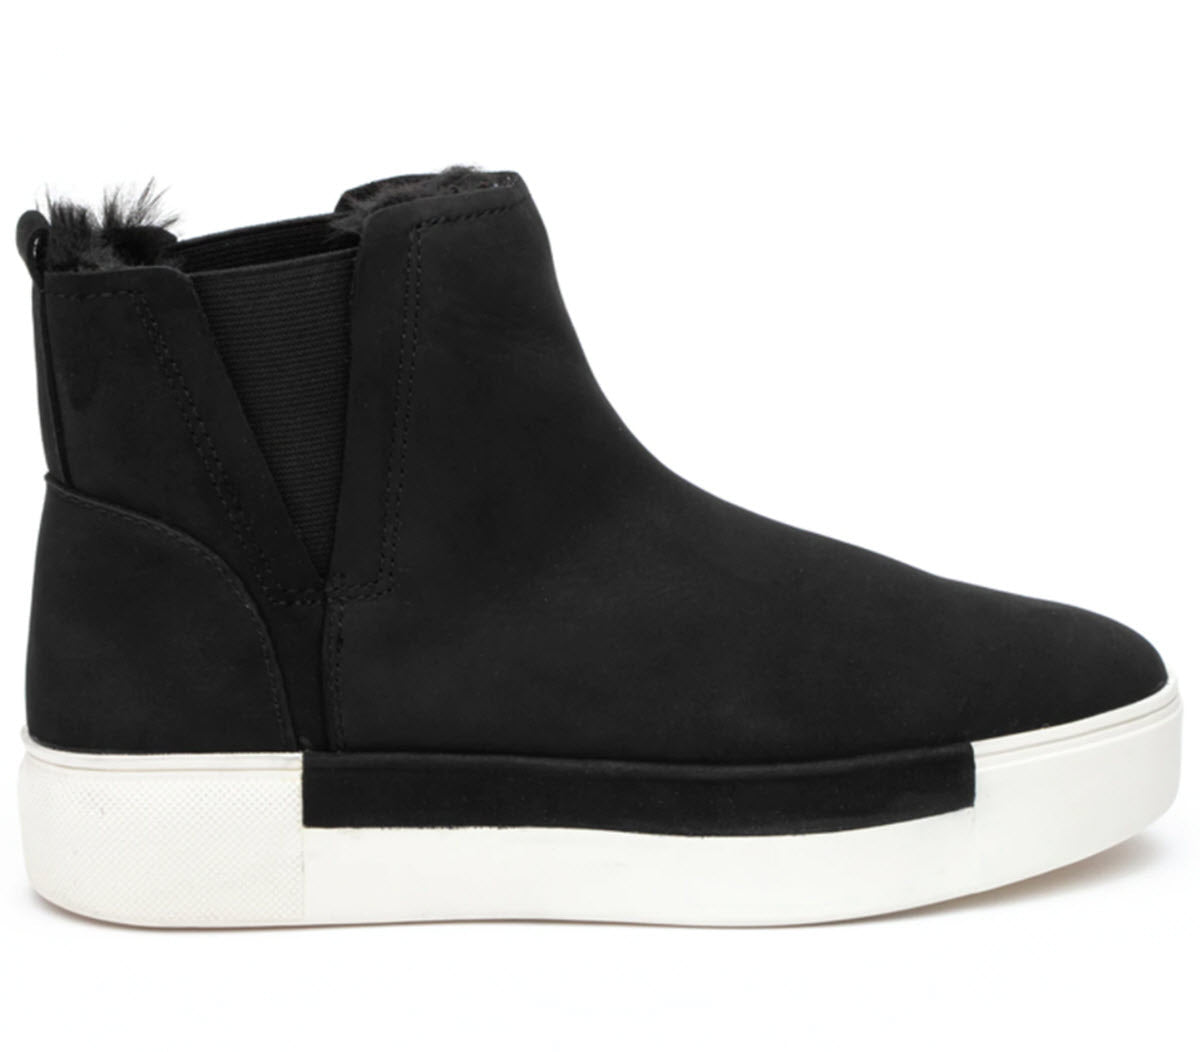 The Waterproof Ankle Bootie on Sneaker Sole in Black